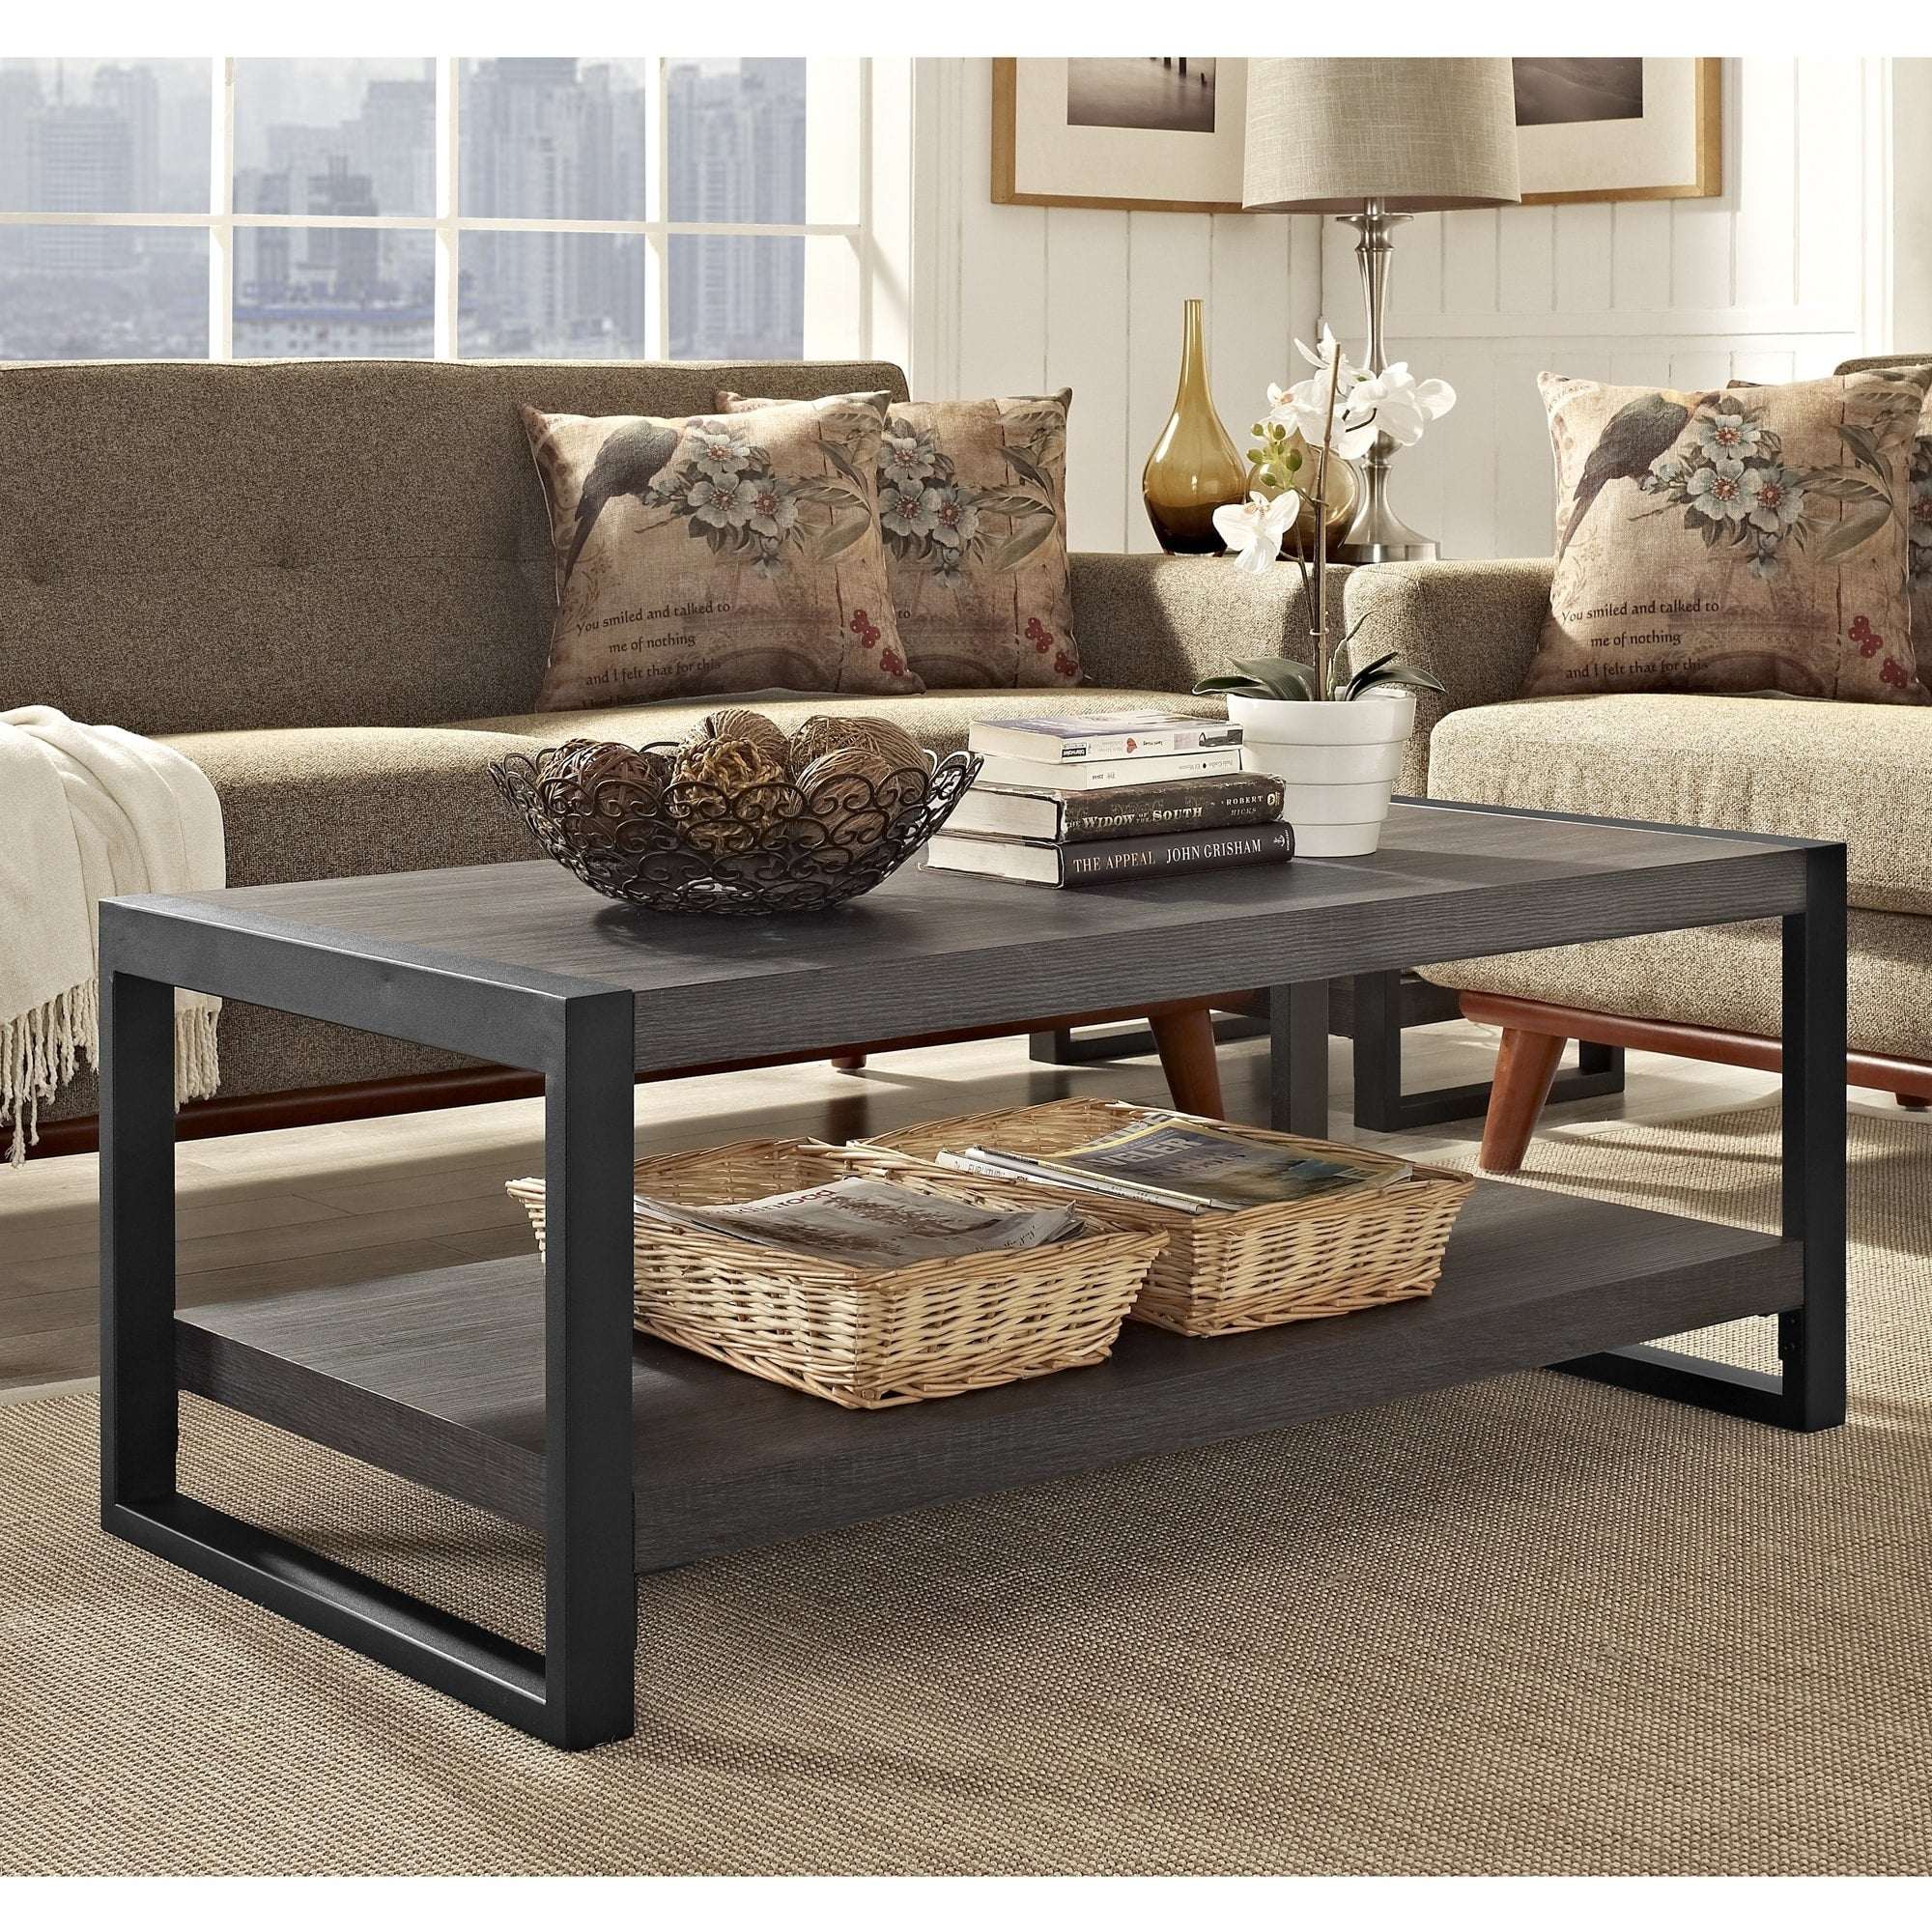 Awesome Matching Coffee Table and Tv Stand